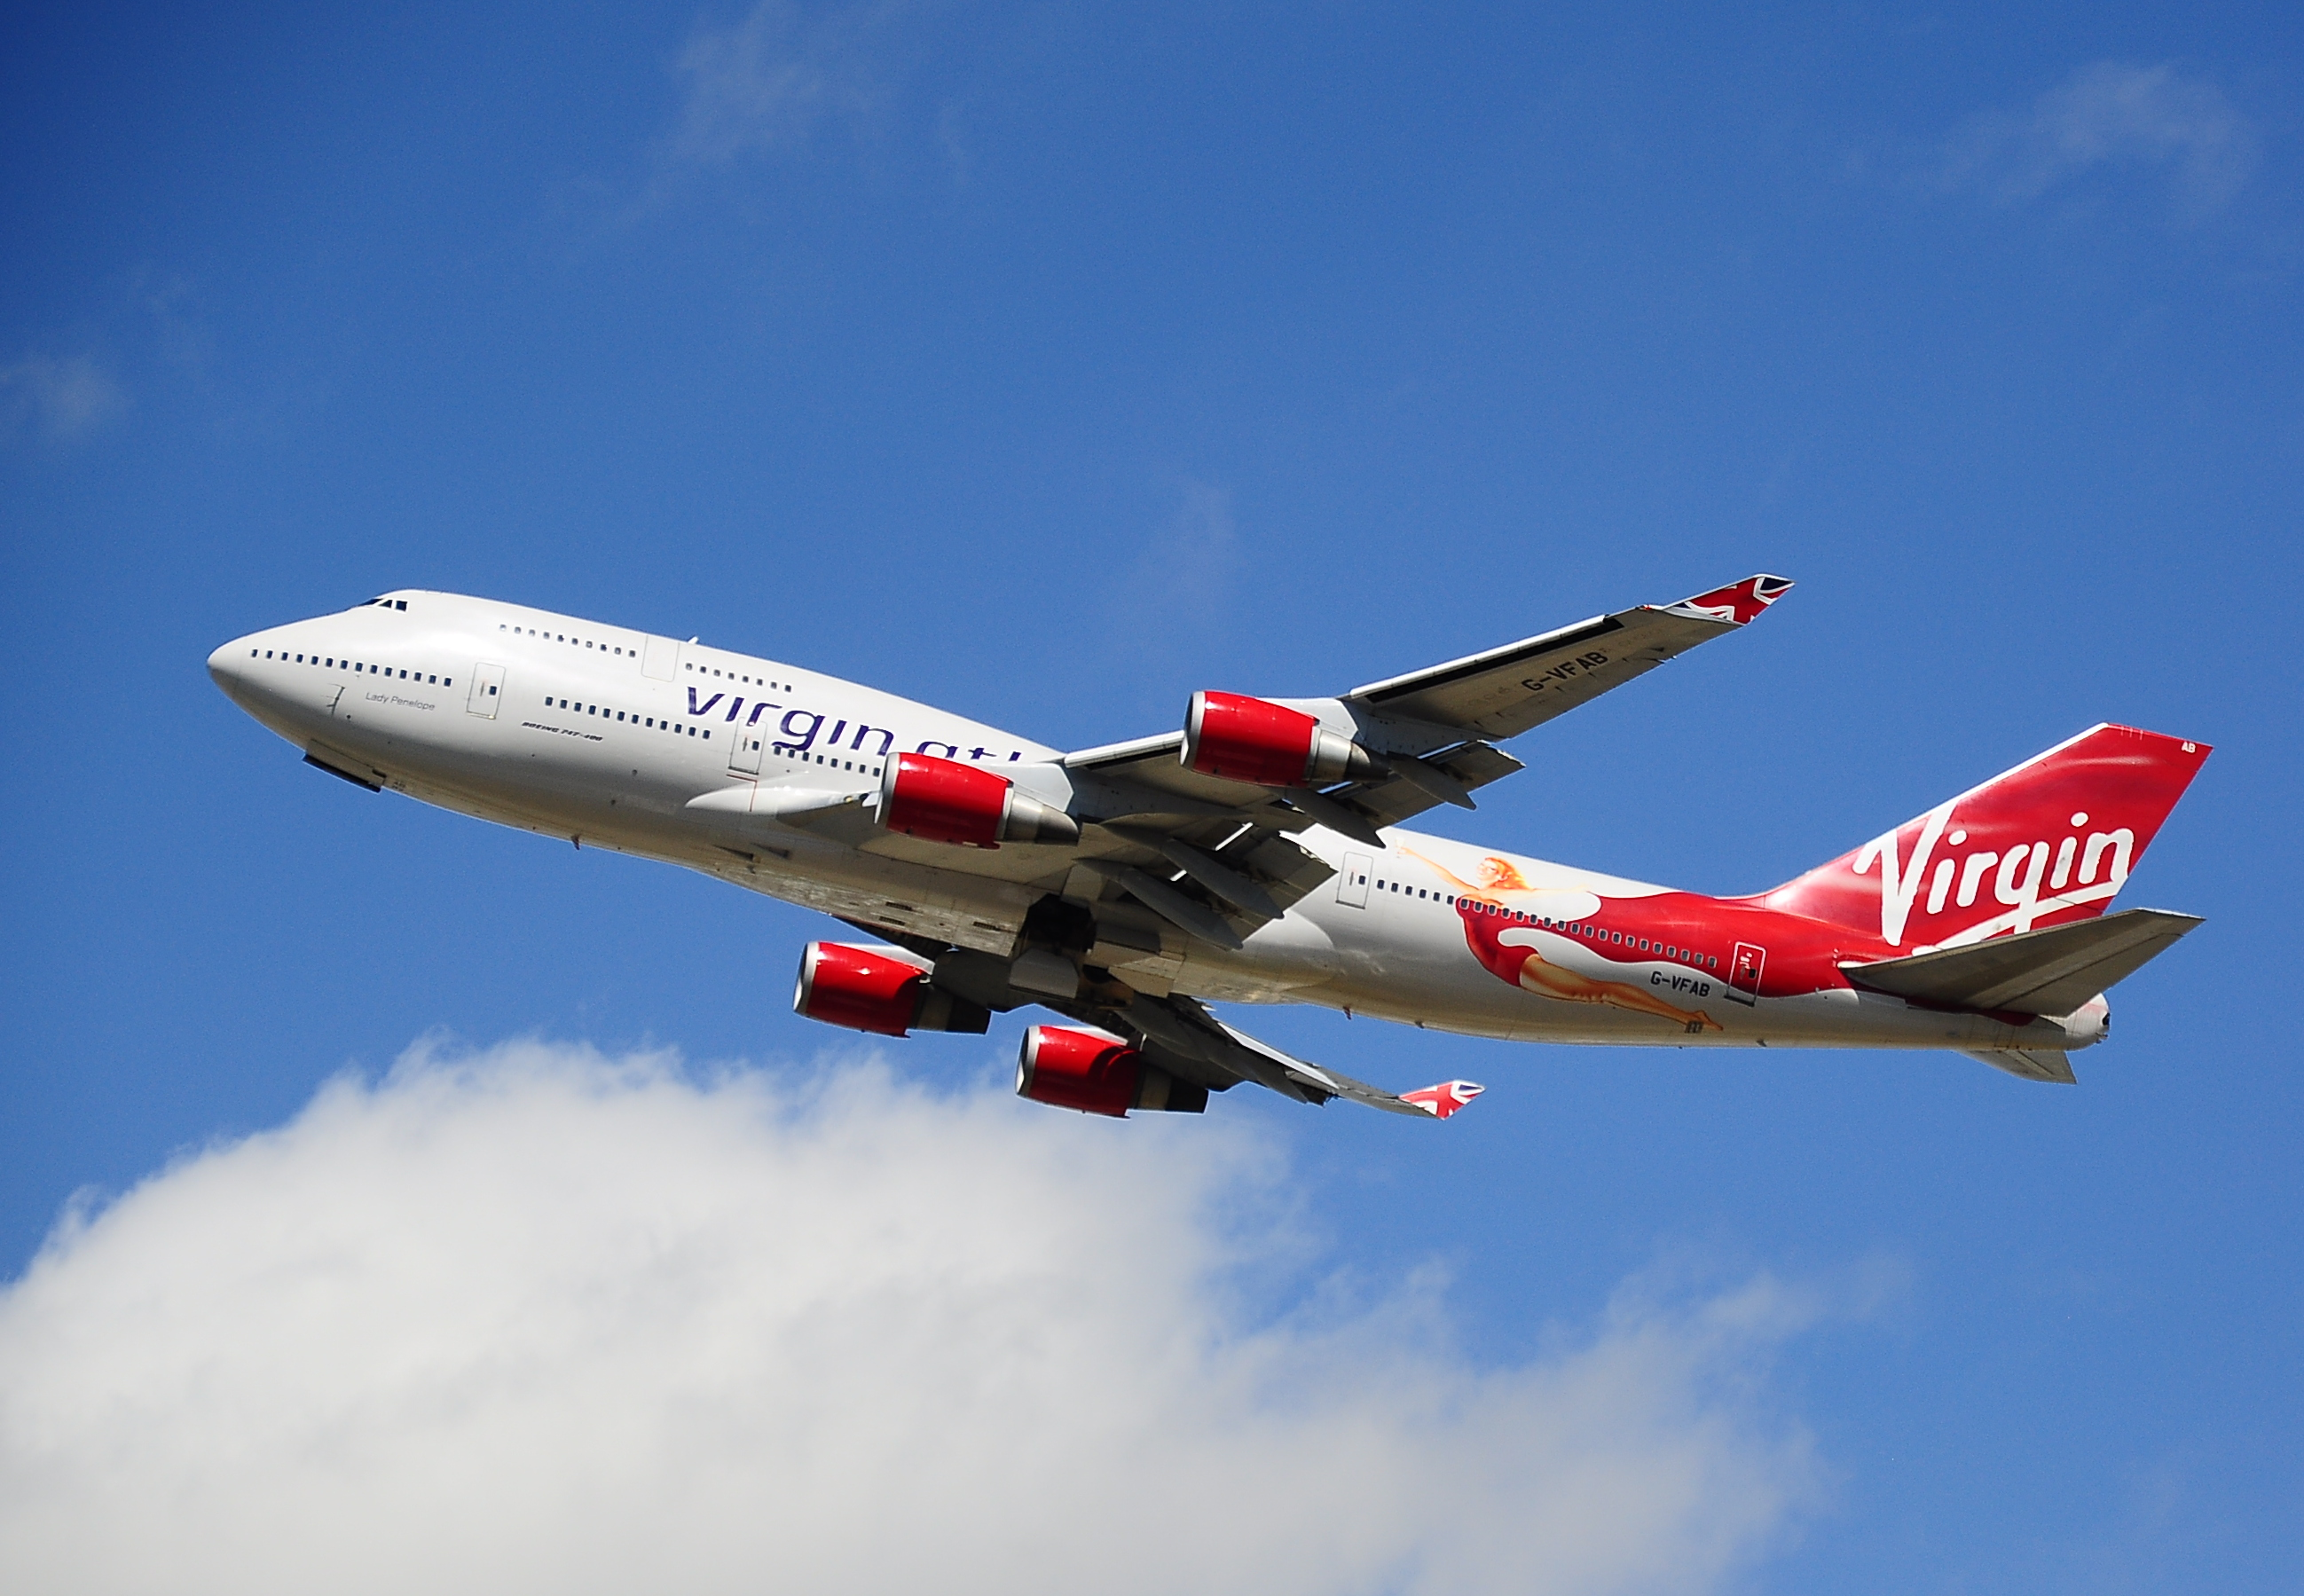 virgin atlantic airways 6 reviews of virgin atlantic airways i am an airline pilot with over 45 years worldwide experience and have flown most of the world's airlines as a paying passenger.